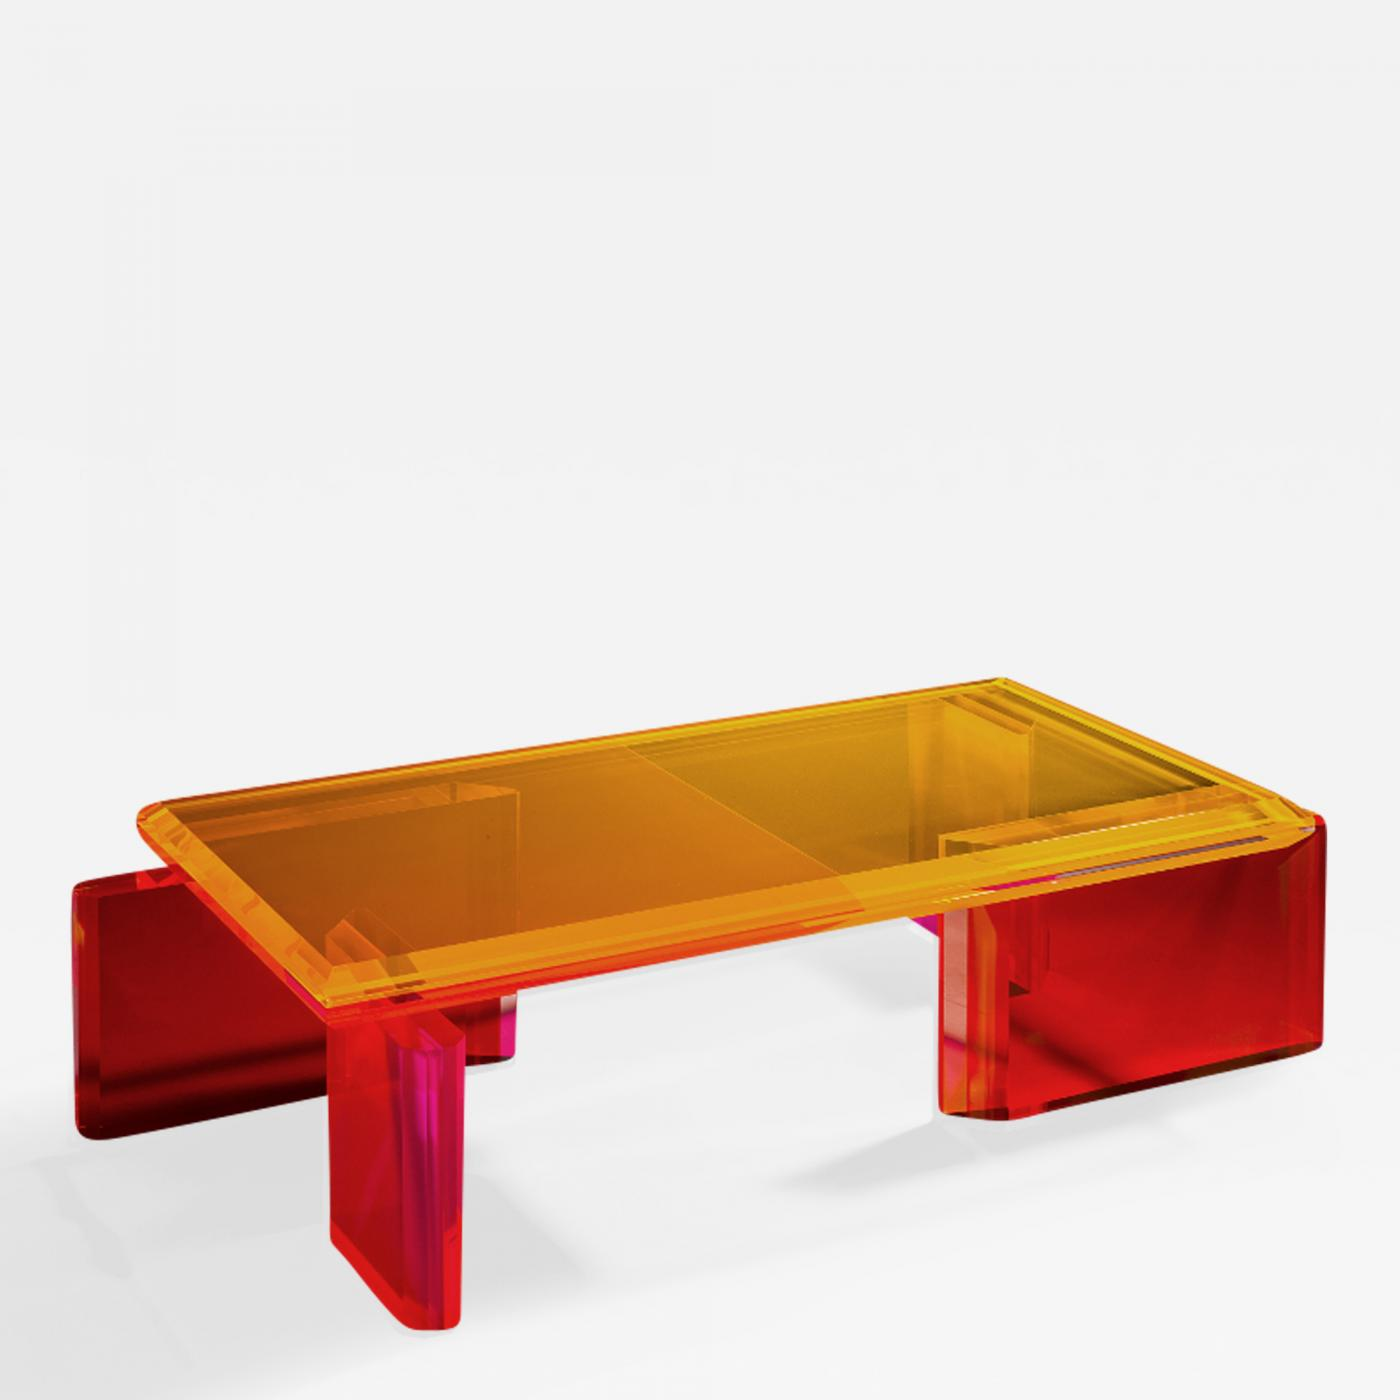 - Charly Bounan - Beautiful Unique Colorful Coffee Table By Charly